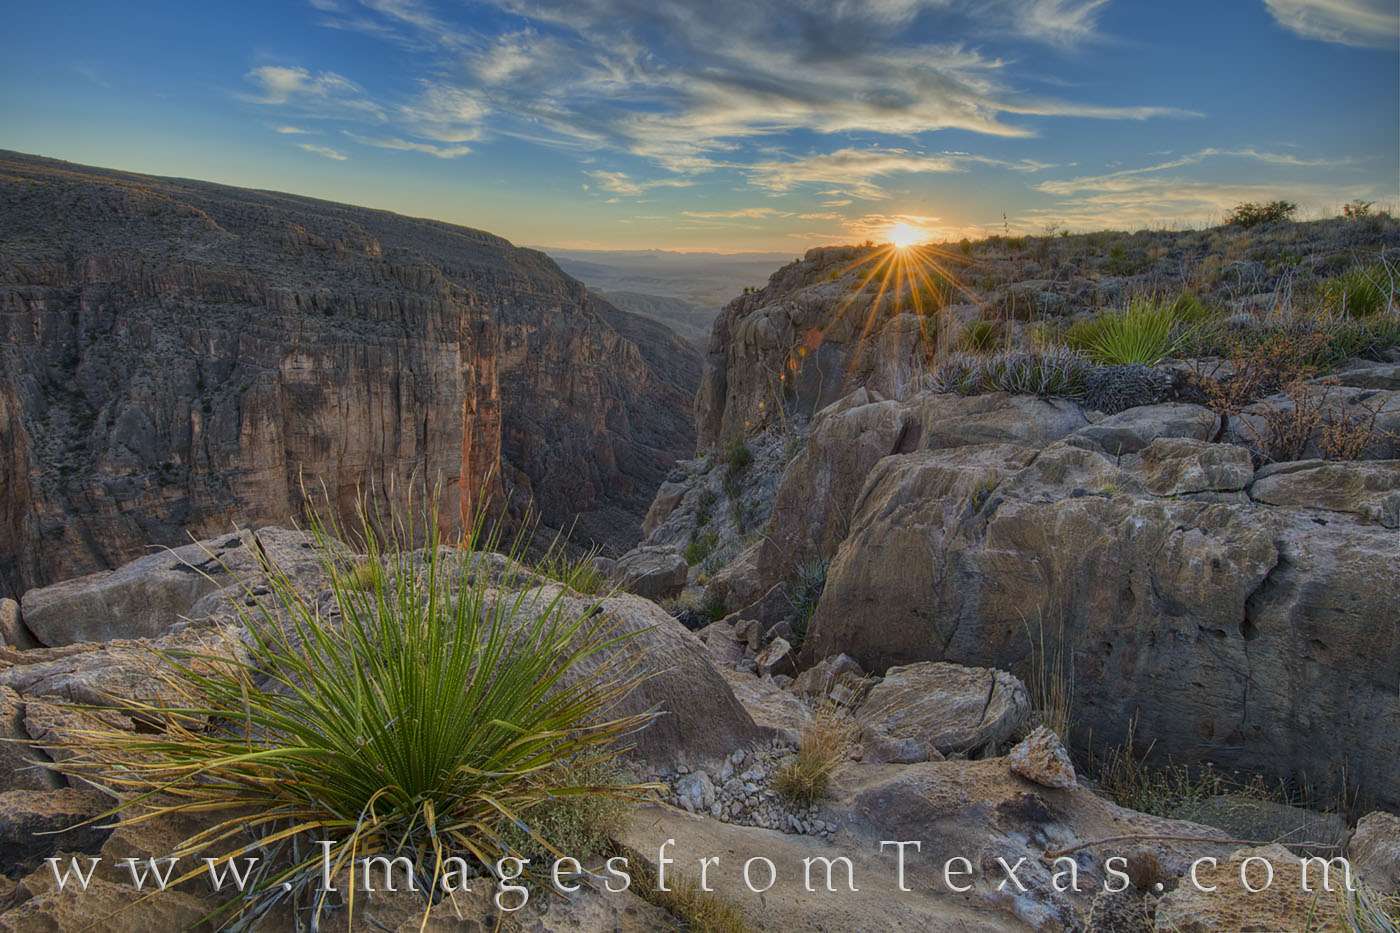 Mariscal canyon, sunset, big bend national park, big bend canyons, canyon, rio grande, hiking, texas hikes, big bend hikes, texas adventures, texas landscape, texas canyons, Mariscal canyon images, photo